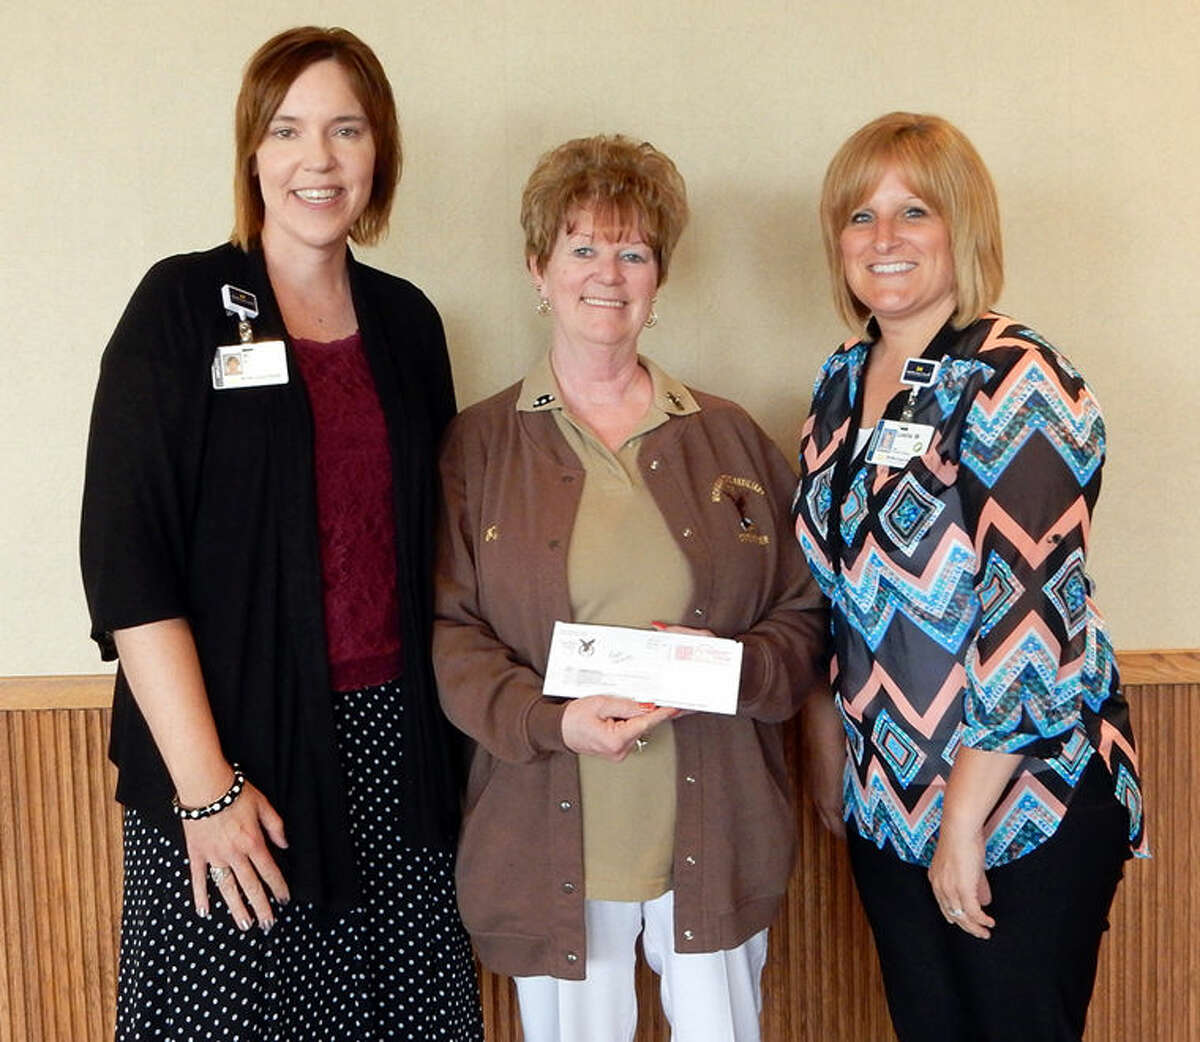 From left are MidMichigan Gladwin Pines Administrator Ruth Benjamin; Pat Murney, president of the Fraternal Order of Eagles Retired Eagles Activity Club; and MidMichigan Gladwin Pines Lead Physical Therapy Assistant Leslie Worden.